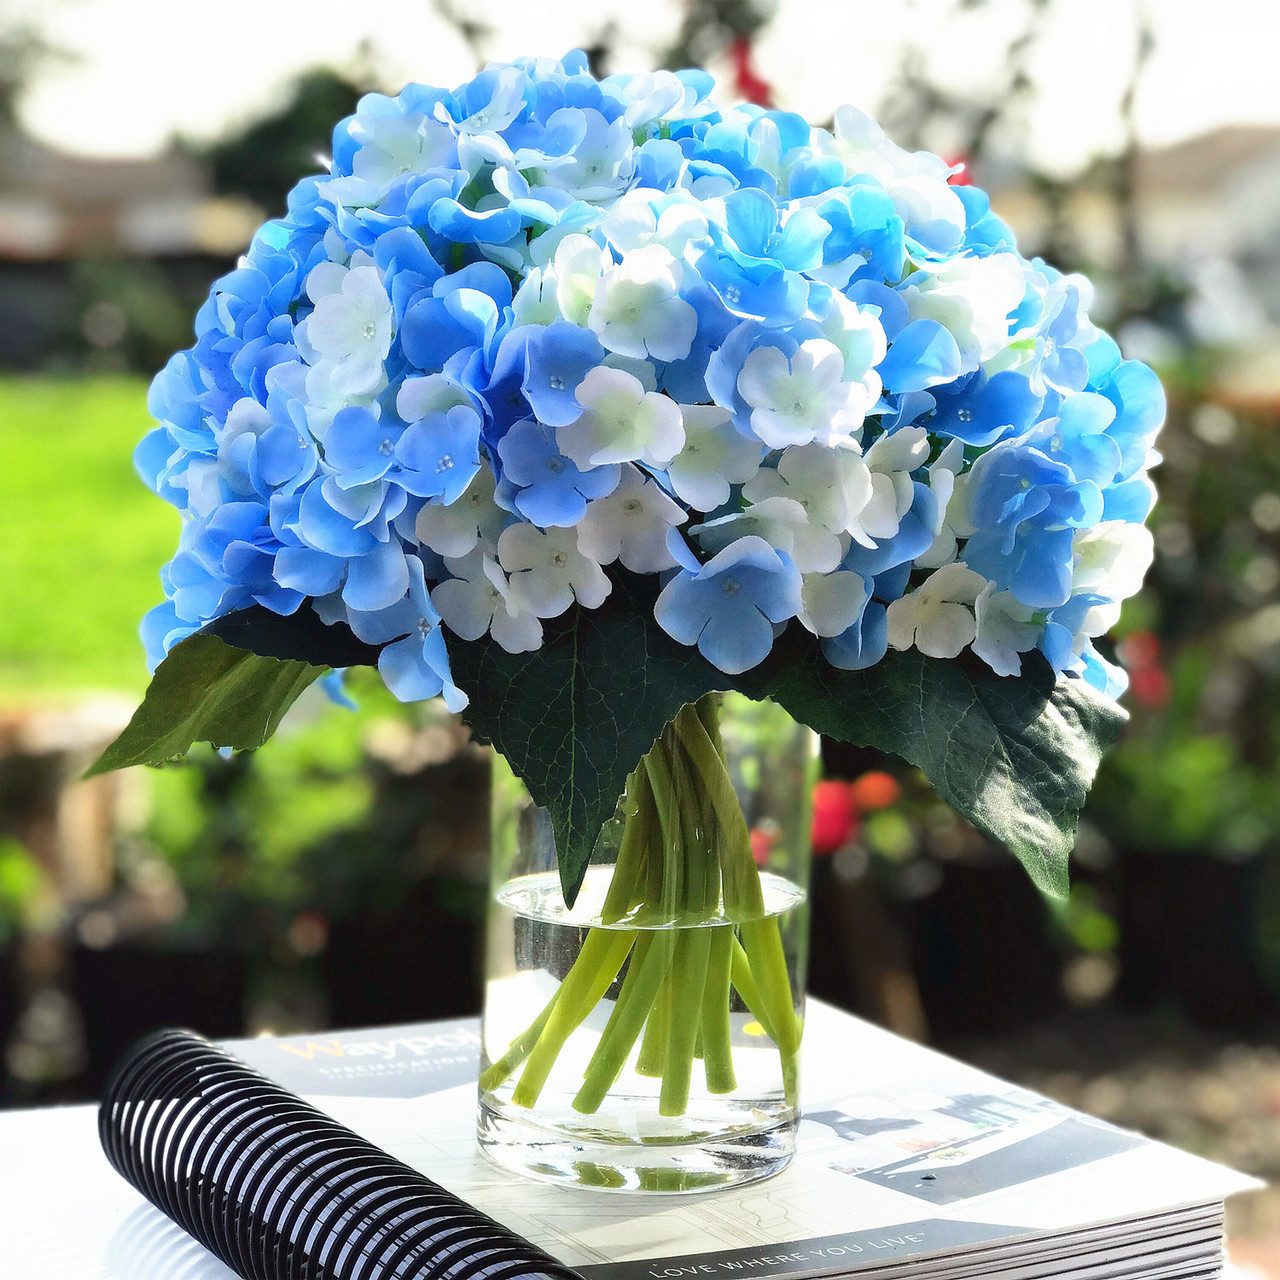 Blue Cream Artificial Hydrangea Flower Arrangements With Clear Glass Vase Enova Home